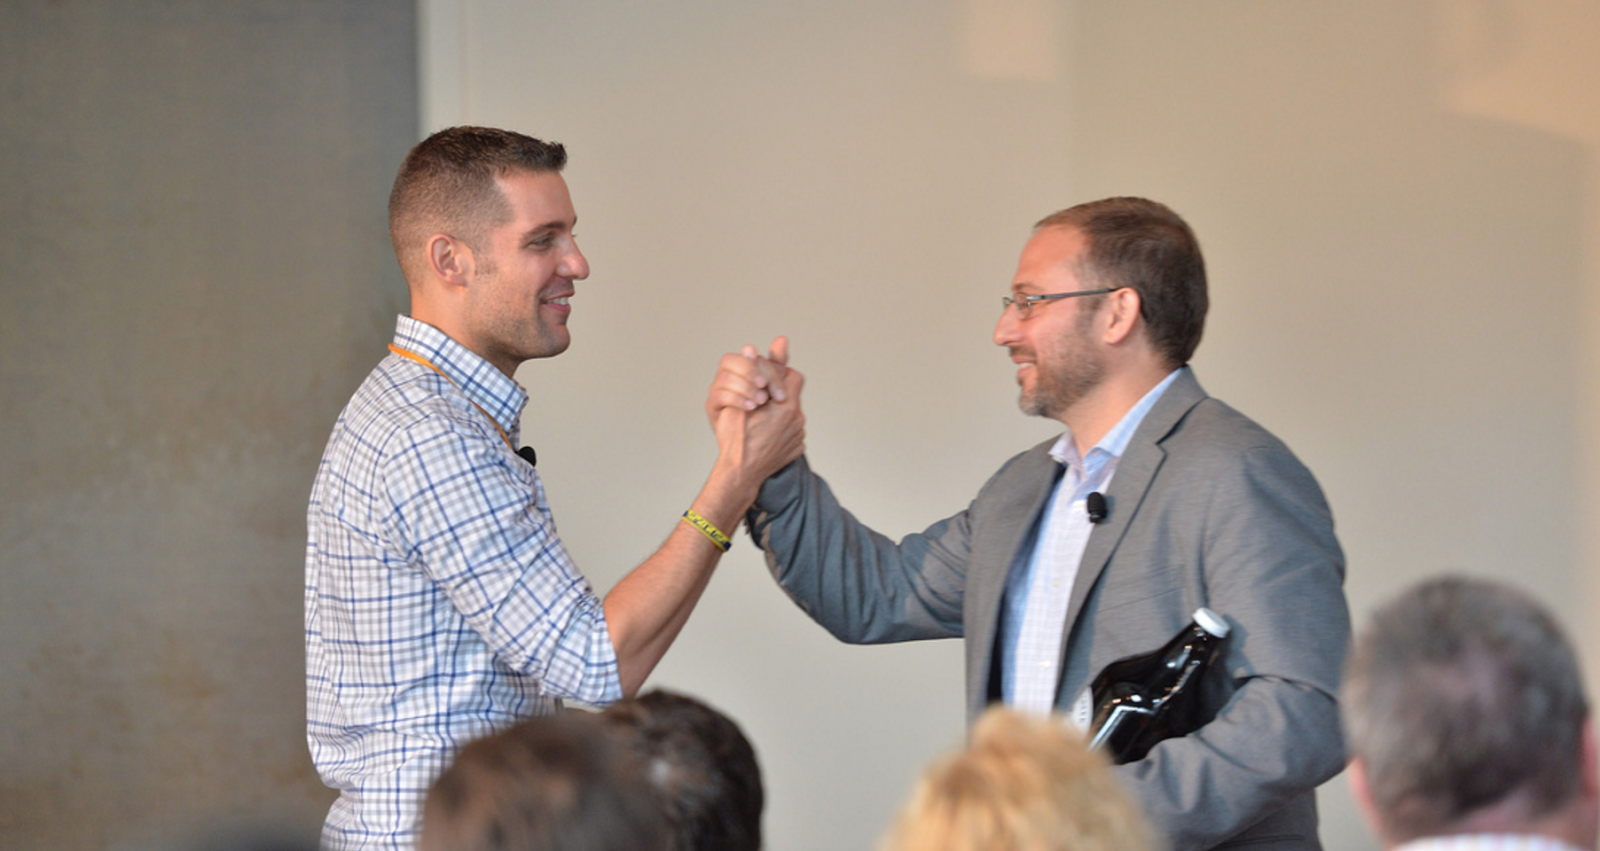 9 Valuable Takeaways from Our First-Ever Marketing Conference